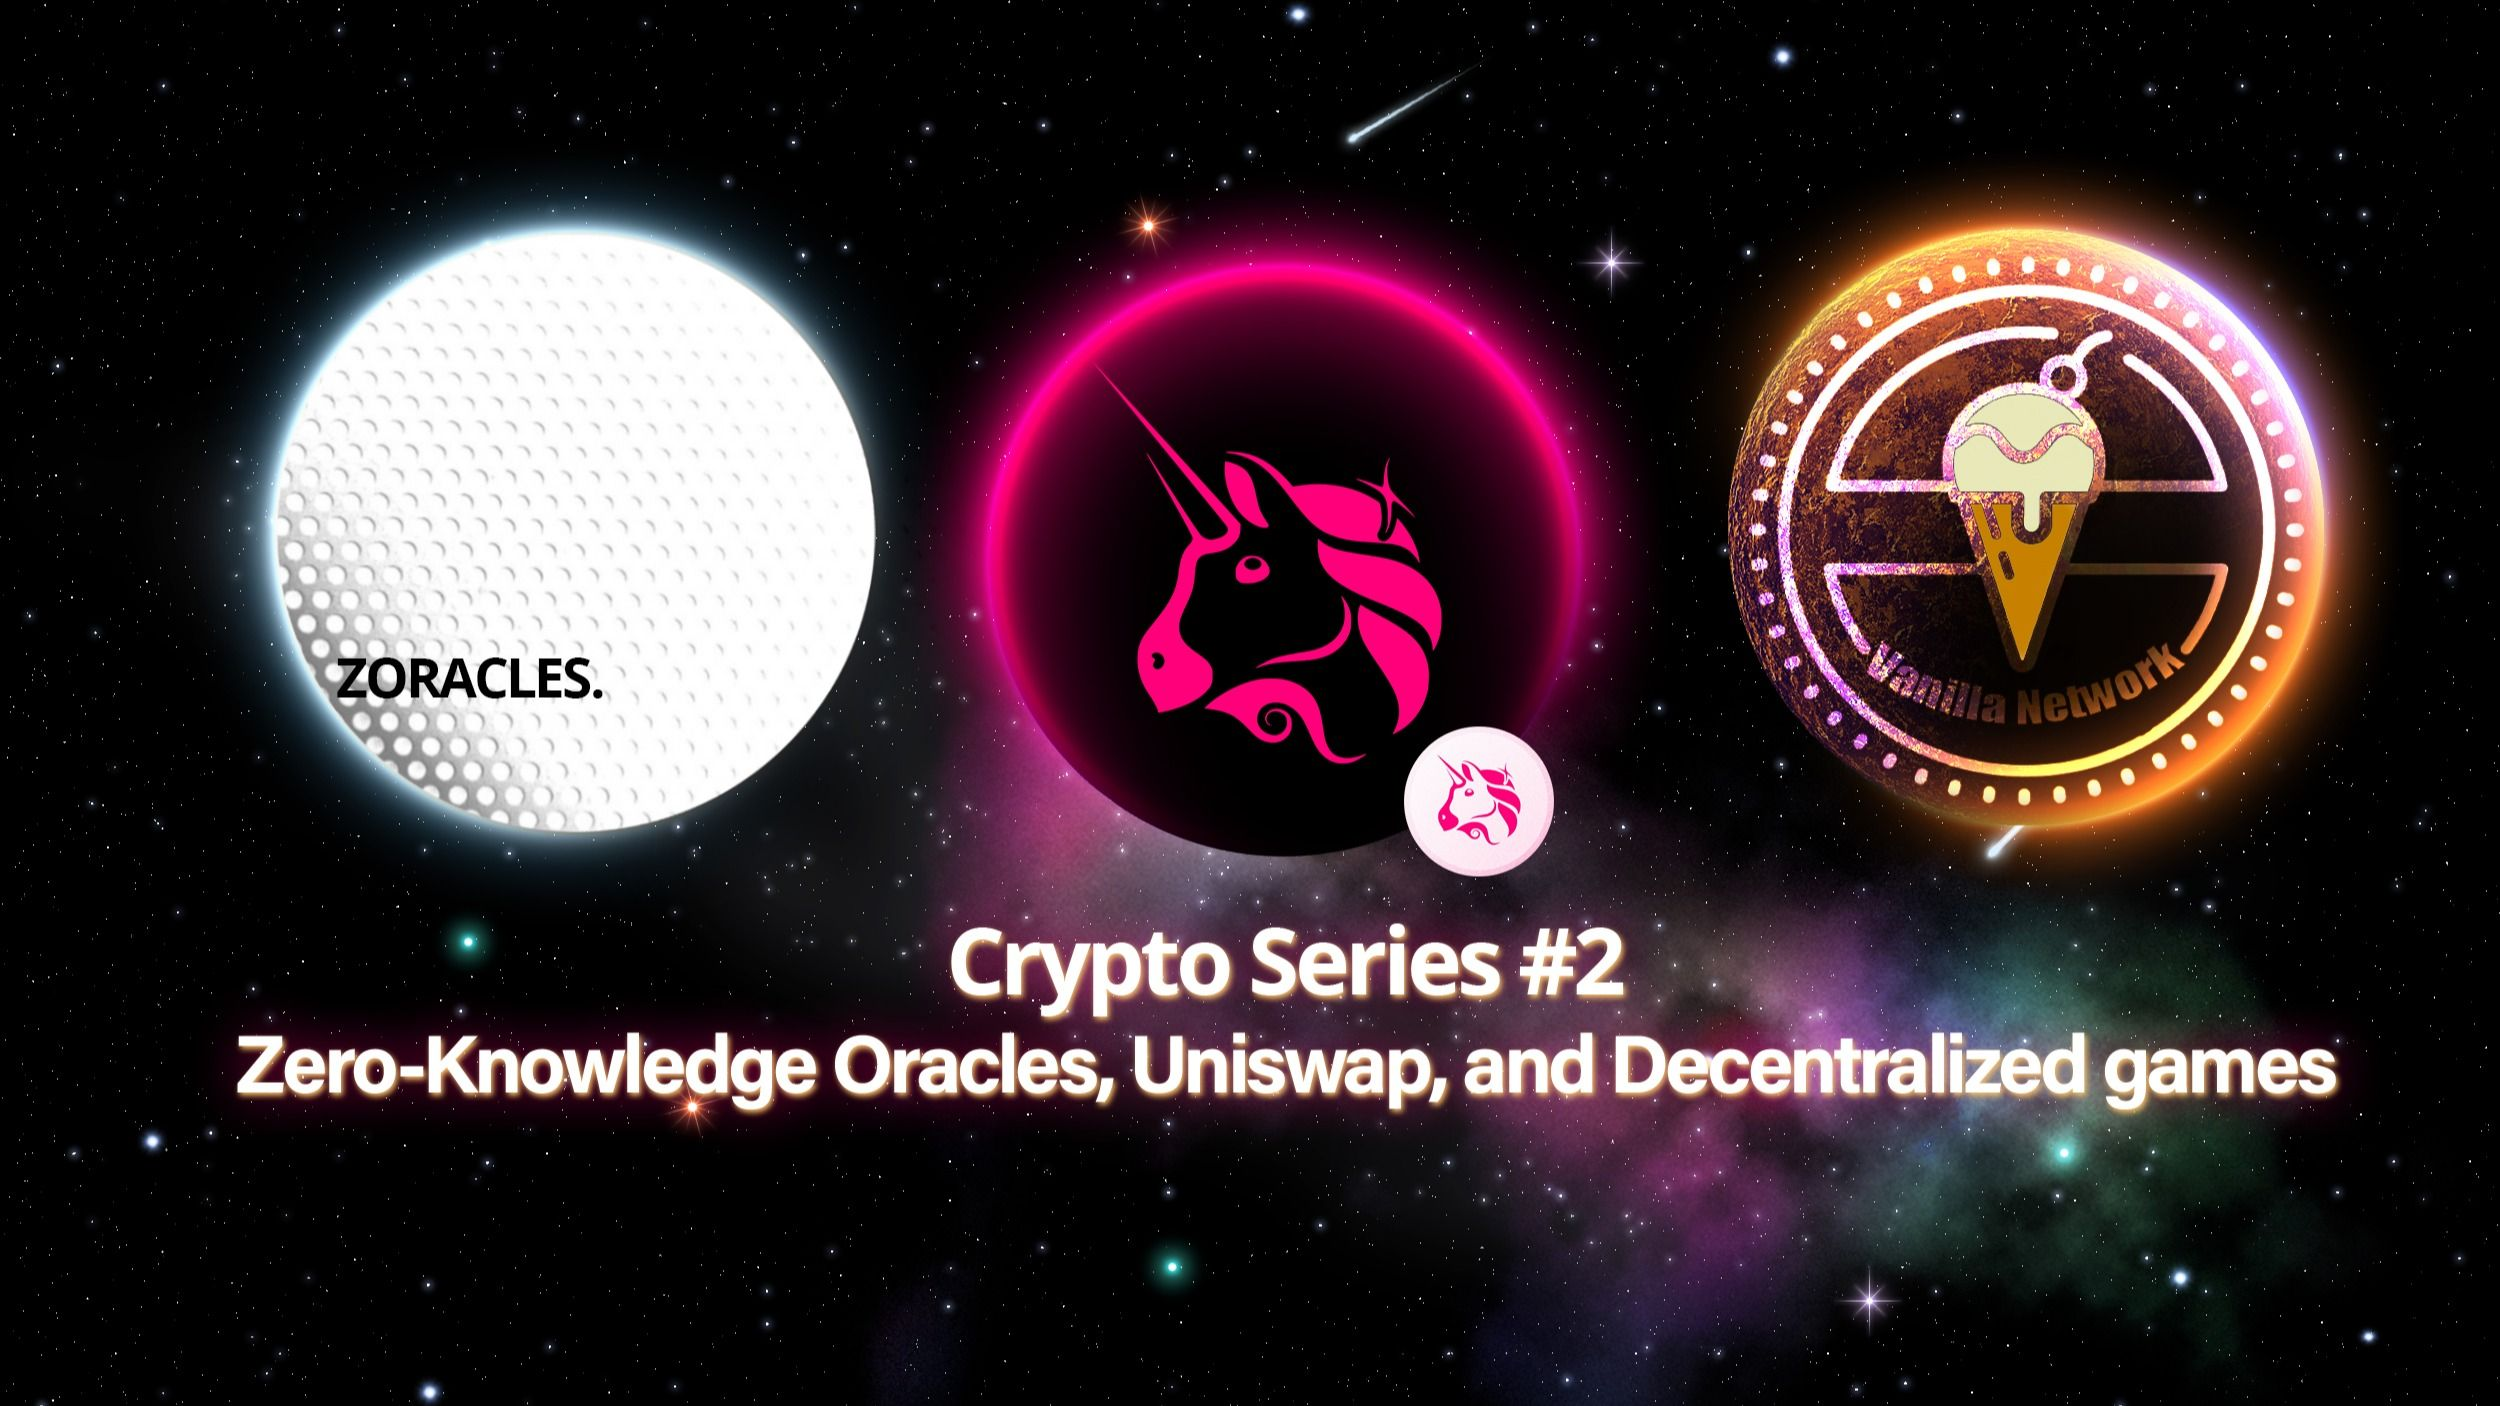 /crypto-series-2-zero-knowledge-oracles-uniswap-and-decentralized-games-3eh3z7p feature image